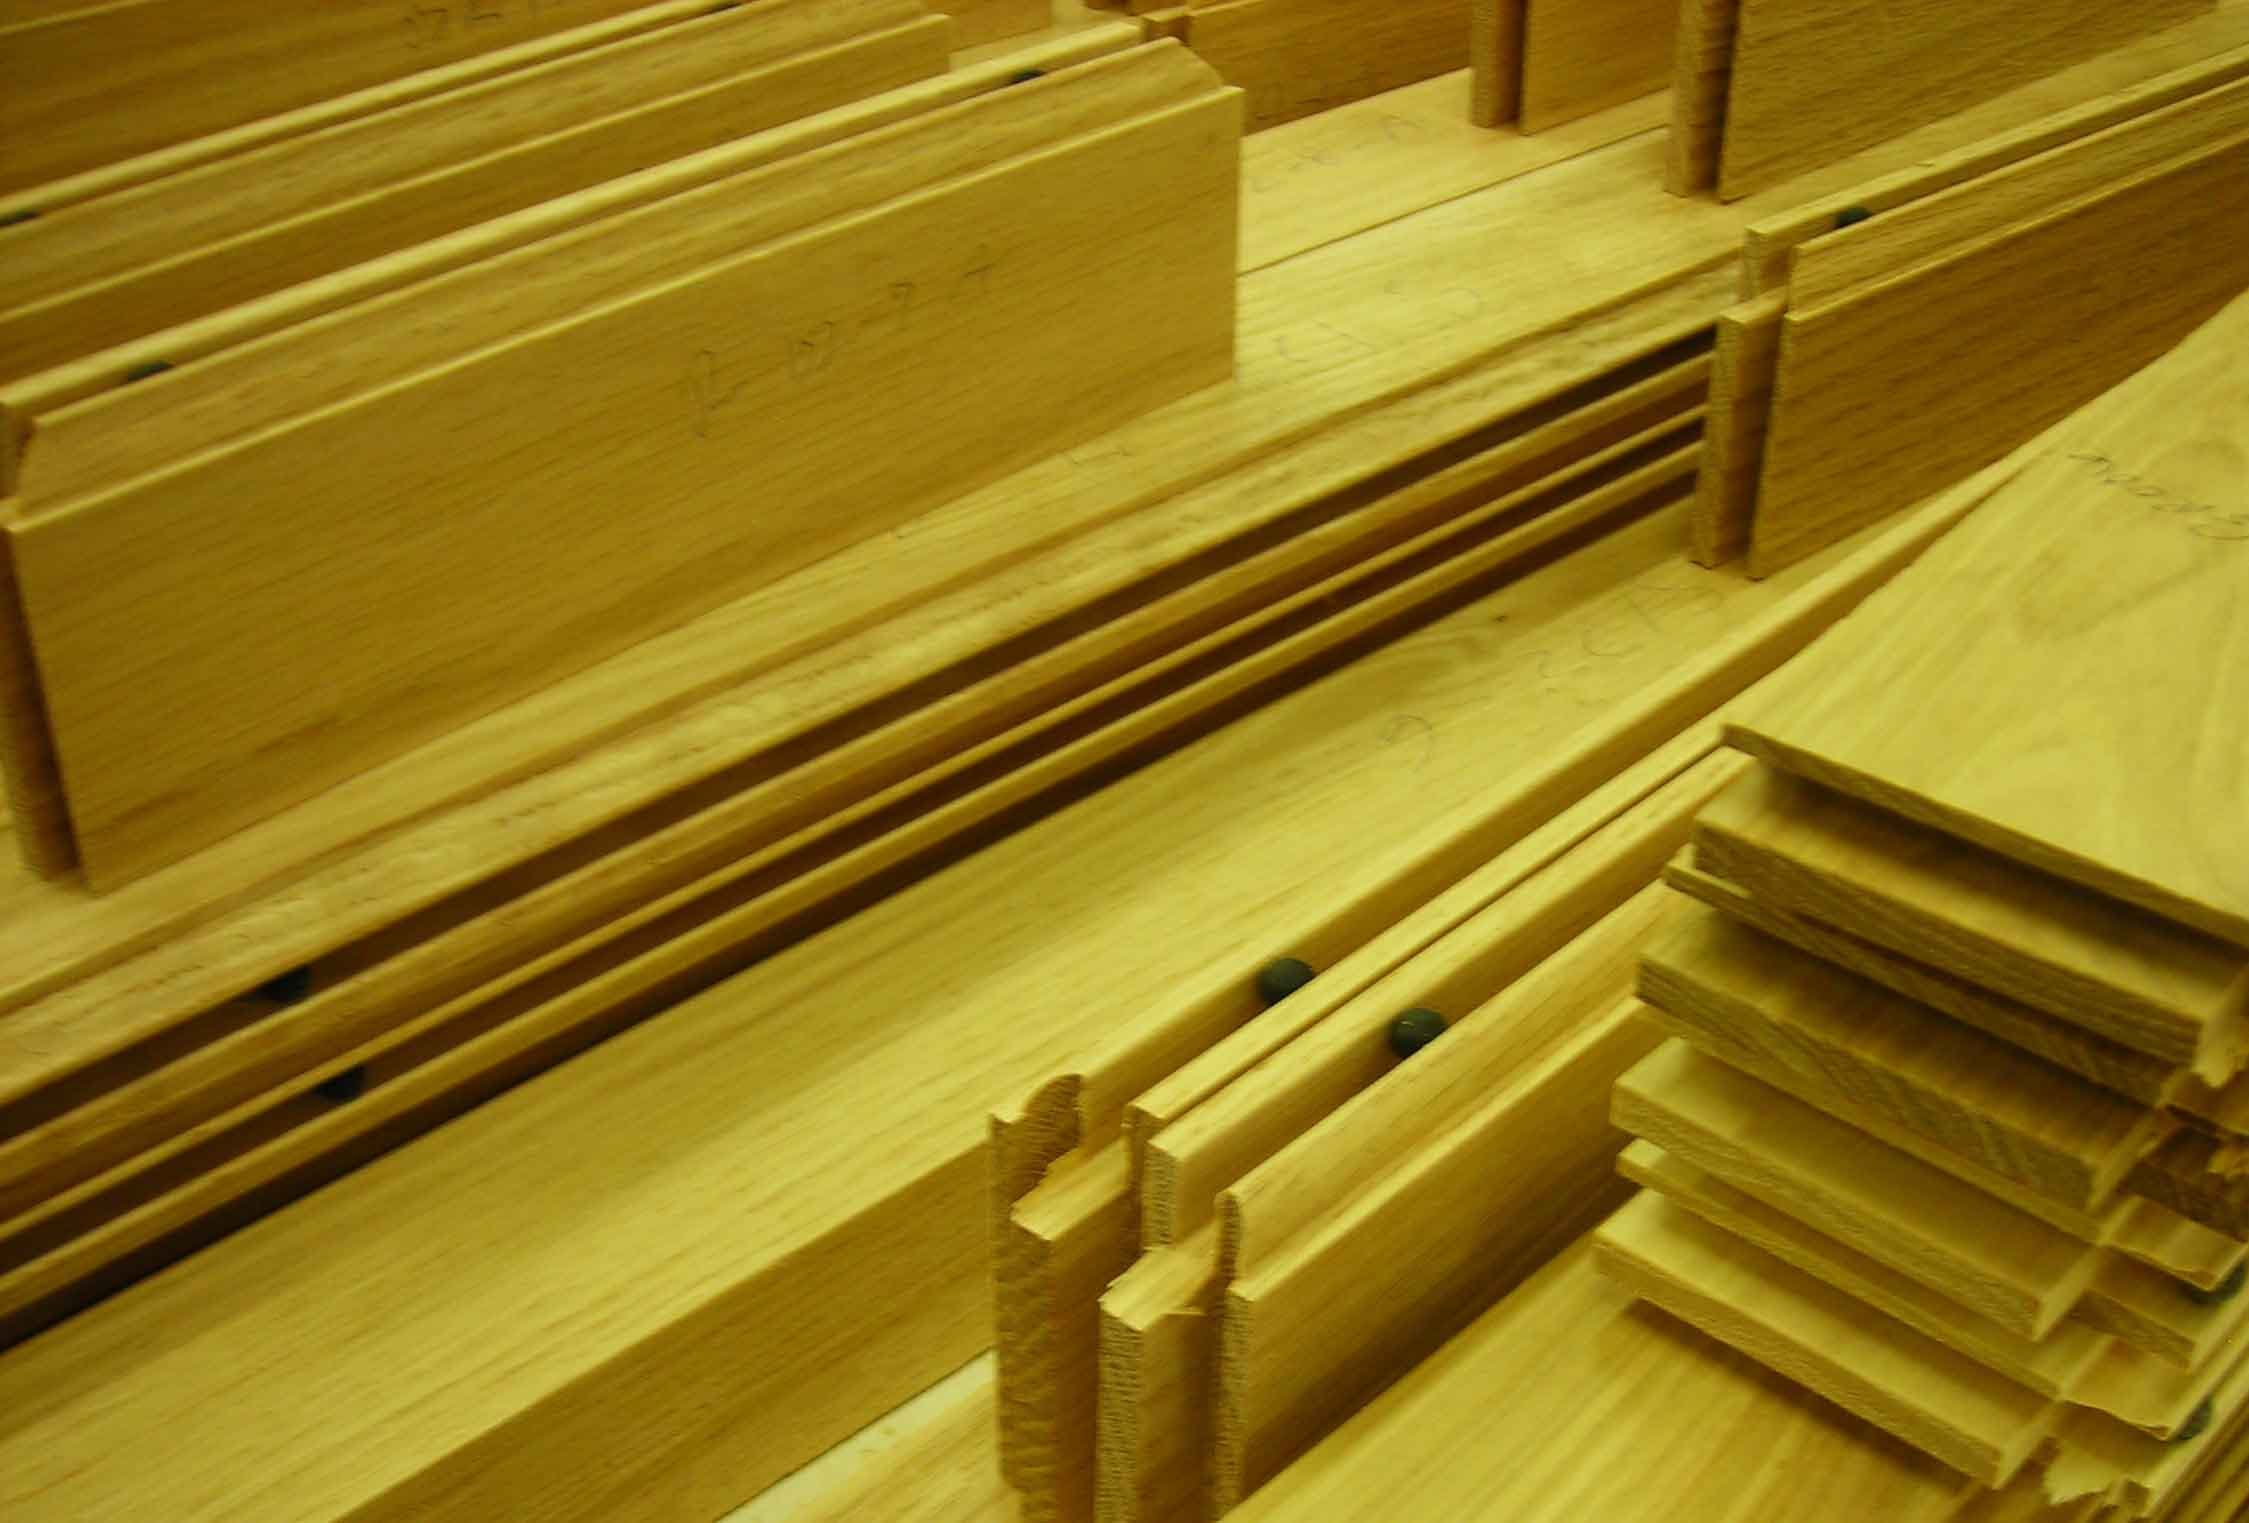 Stile rail timberlinedoors for Wood stile and rail doors